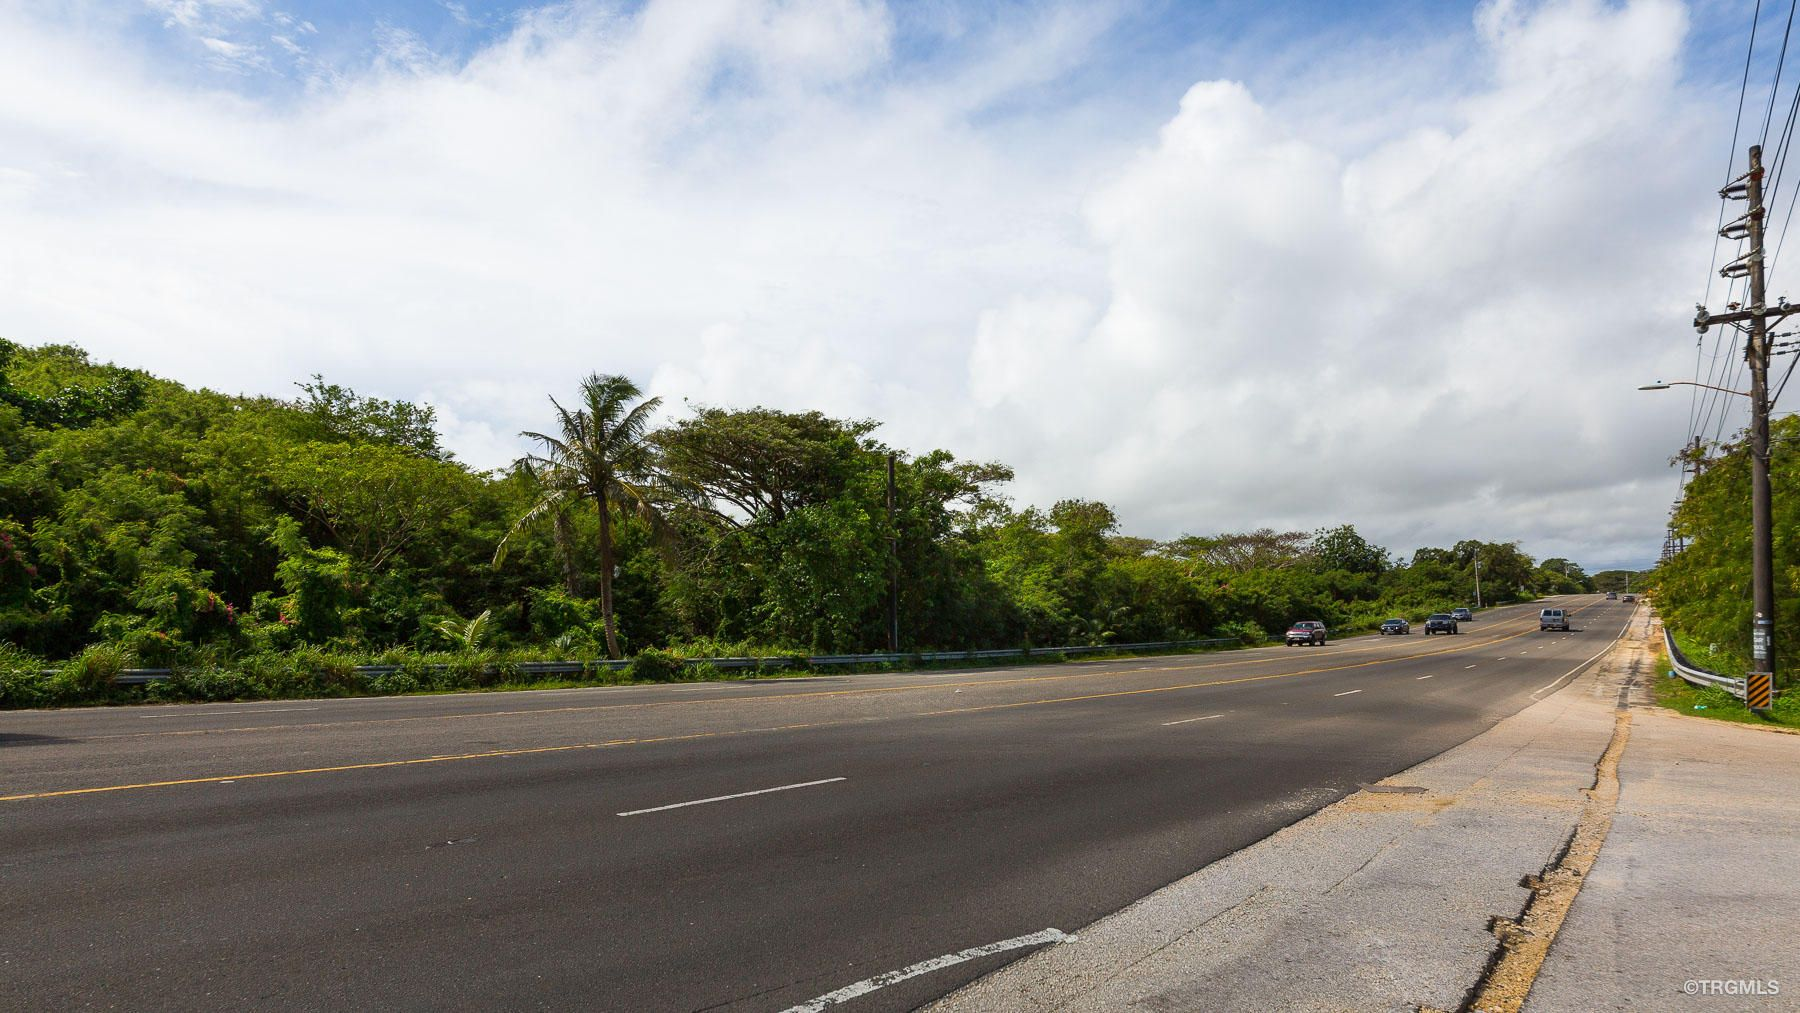 Prime Route 4 frontage provides great potential for a mixed use development.